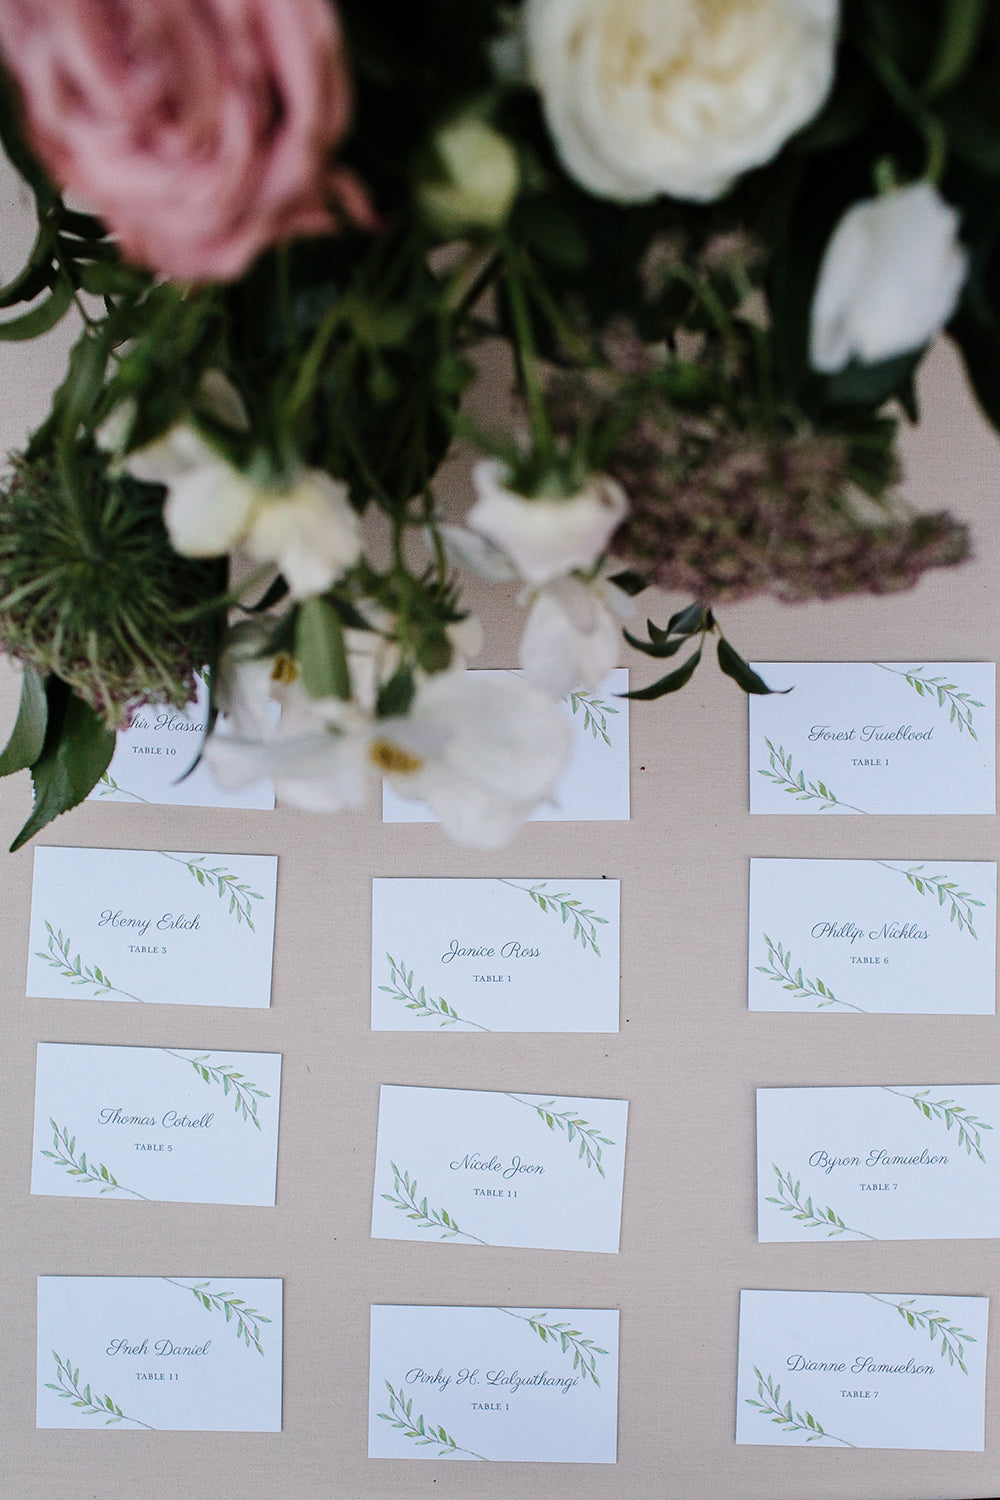 Greenery escort cards illustrated by Lana's Shop